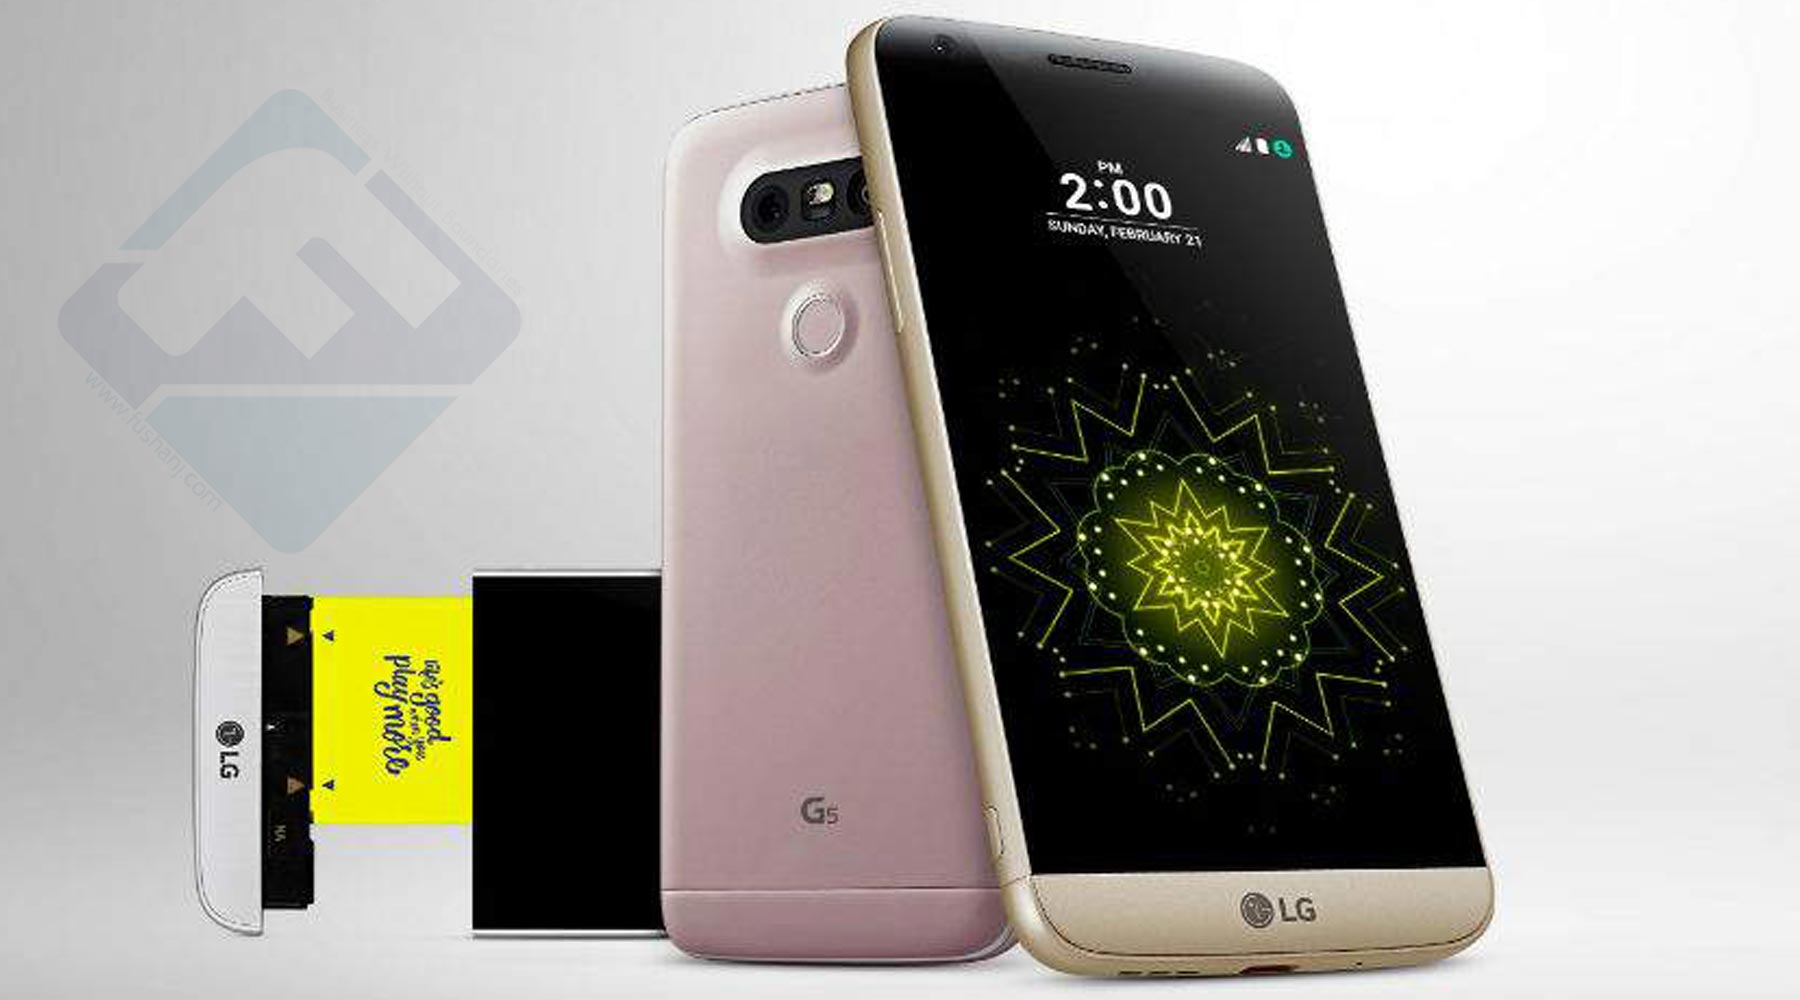 lg-g5-display-size-price-dubai-abu-dhabi-mobile-battery